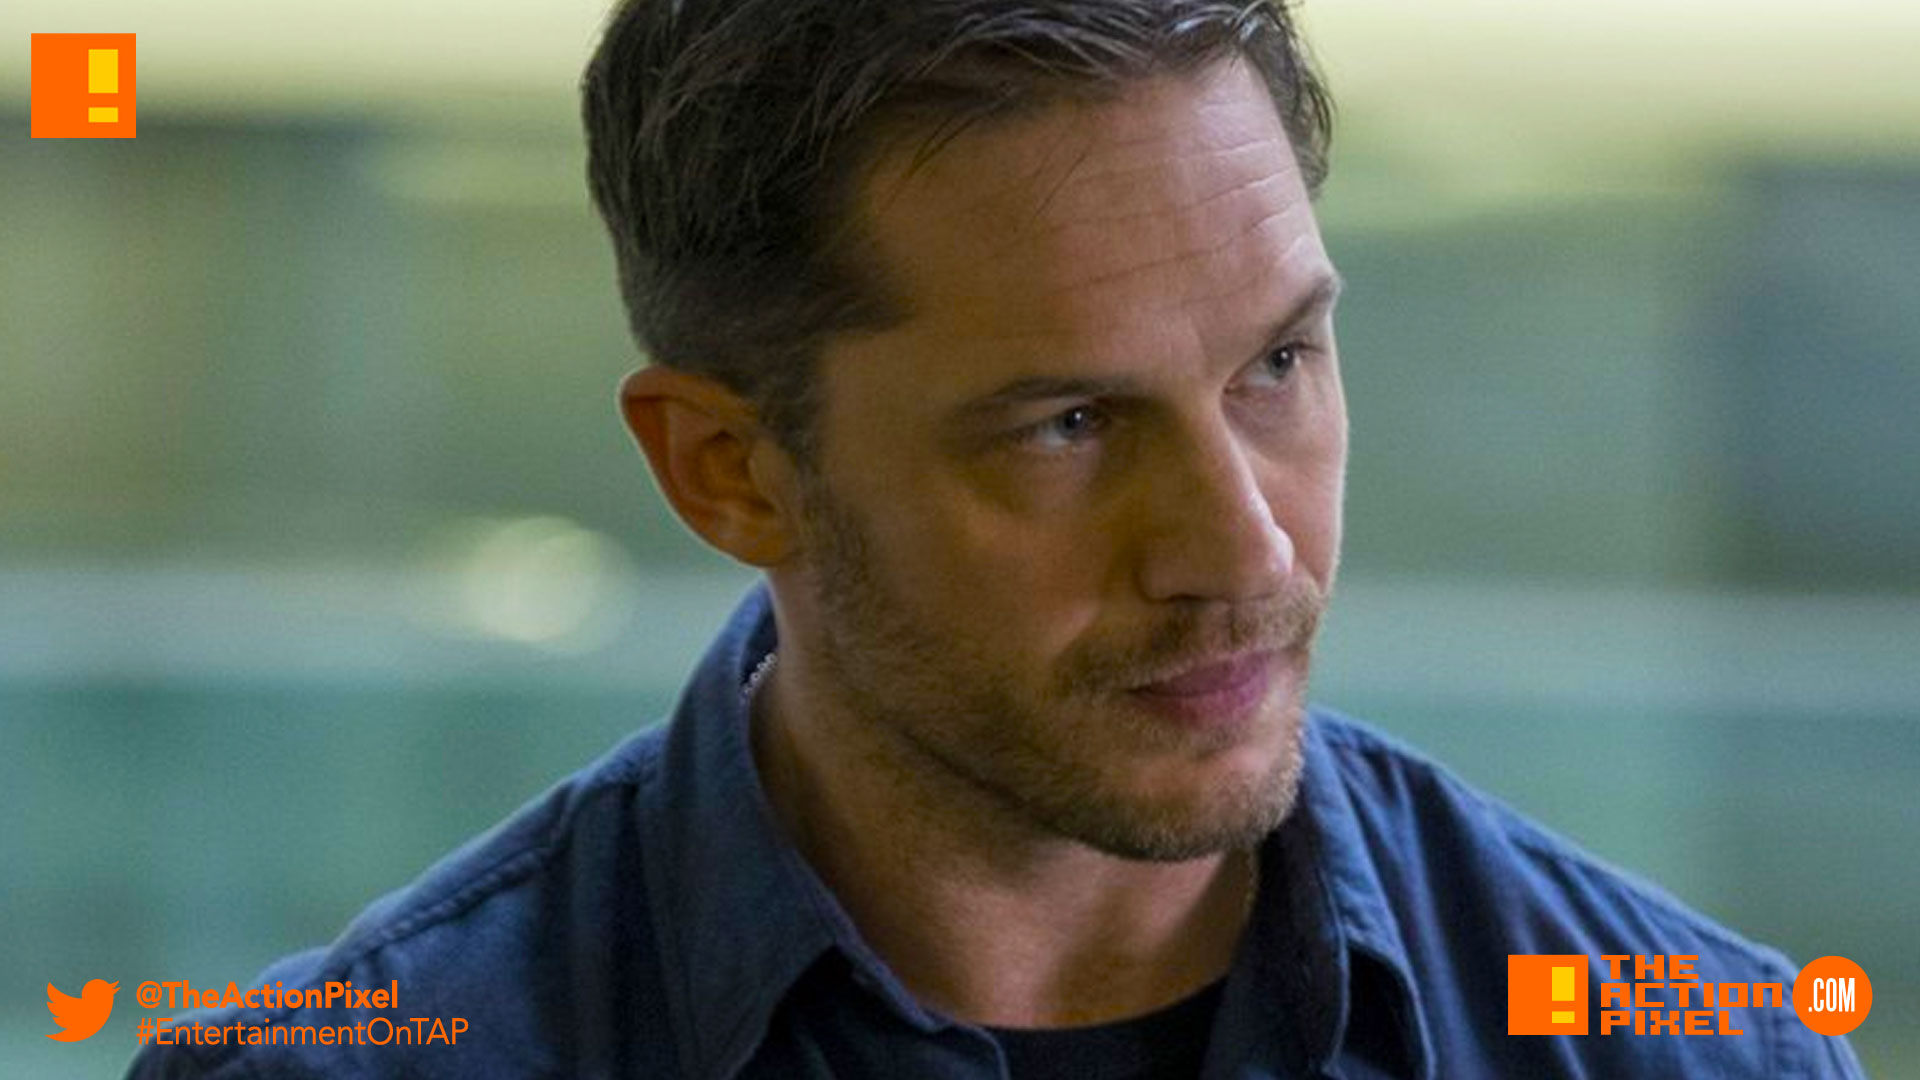 tom hardy, venom, spider-man, spin-off, the action pixel, entertainment on tap,sony pictures